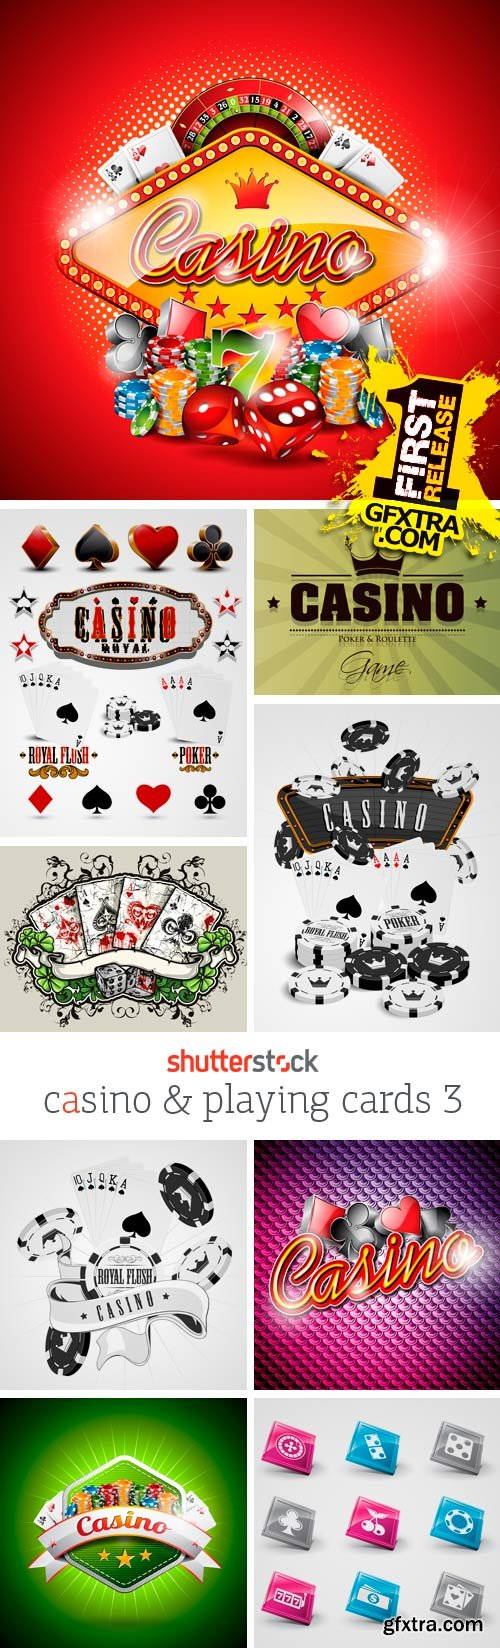 T shirt design 7 25xeps - Amazing Ss Casino Playing Cards 3 25xeps